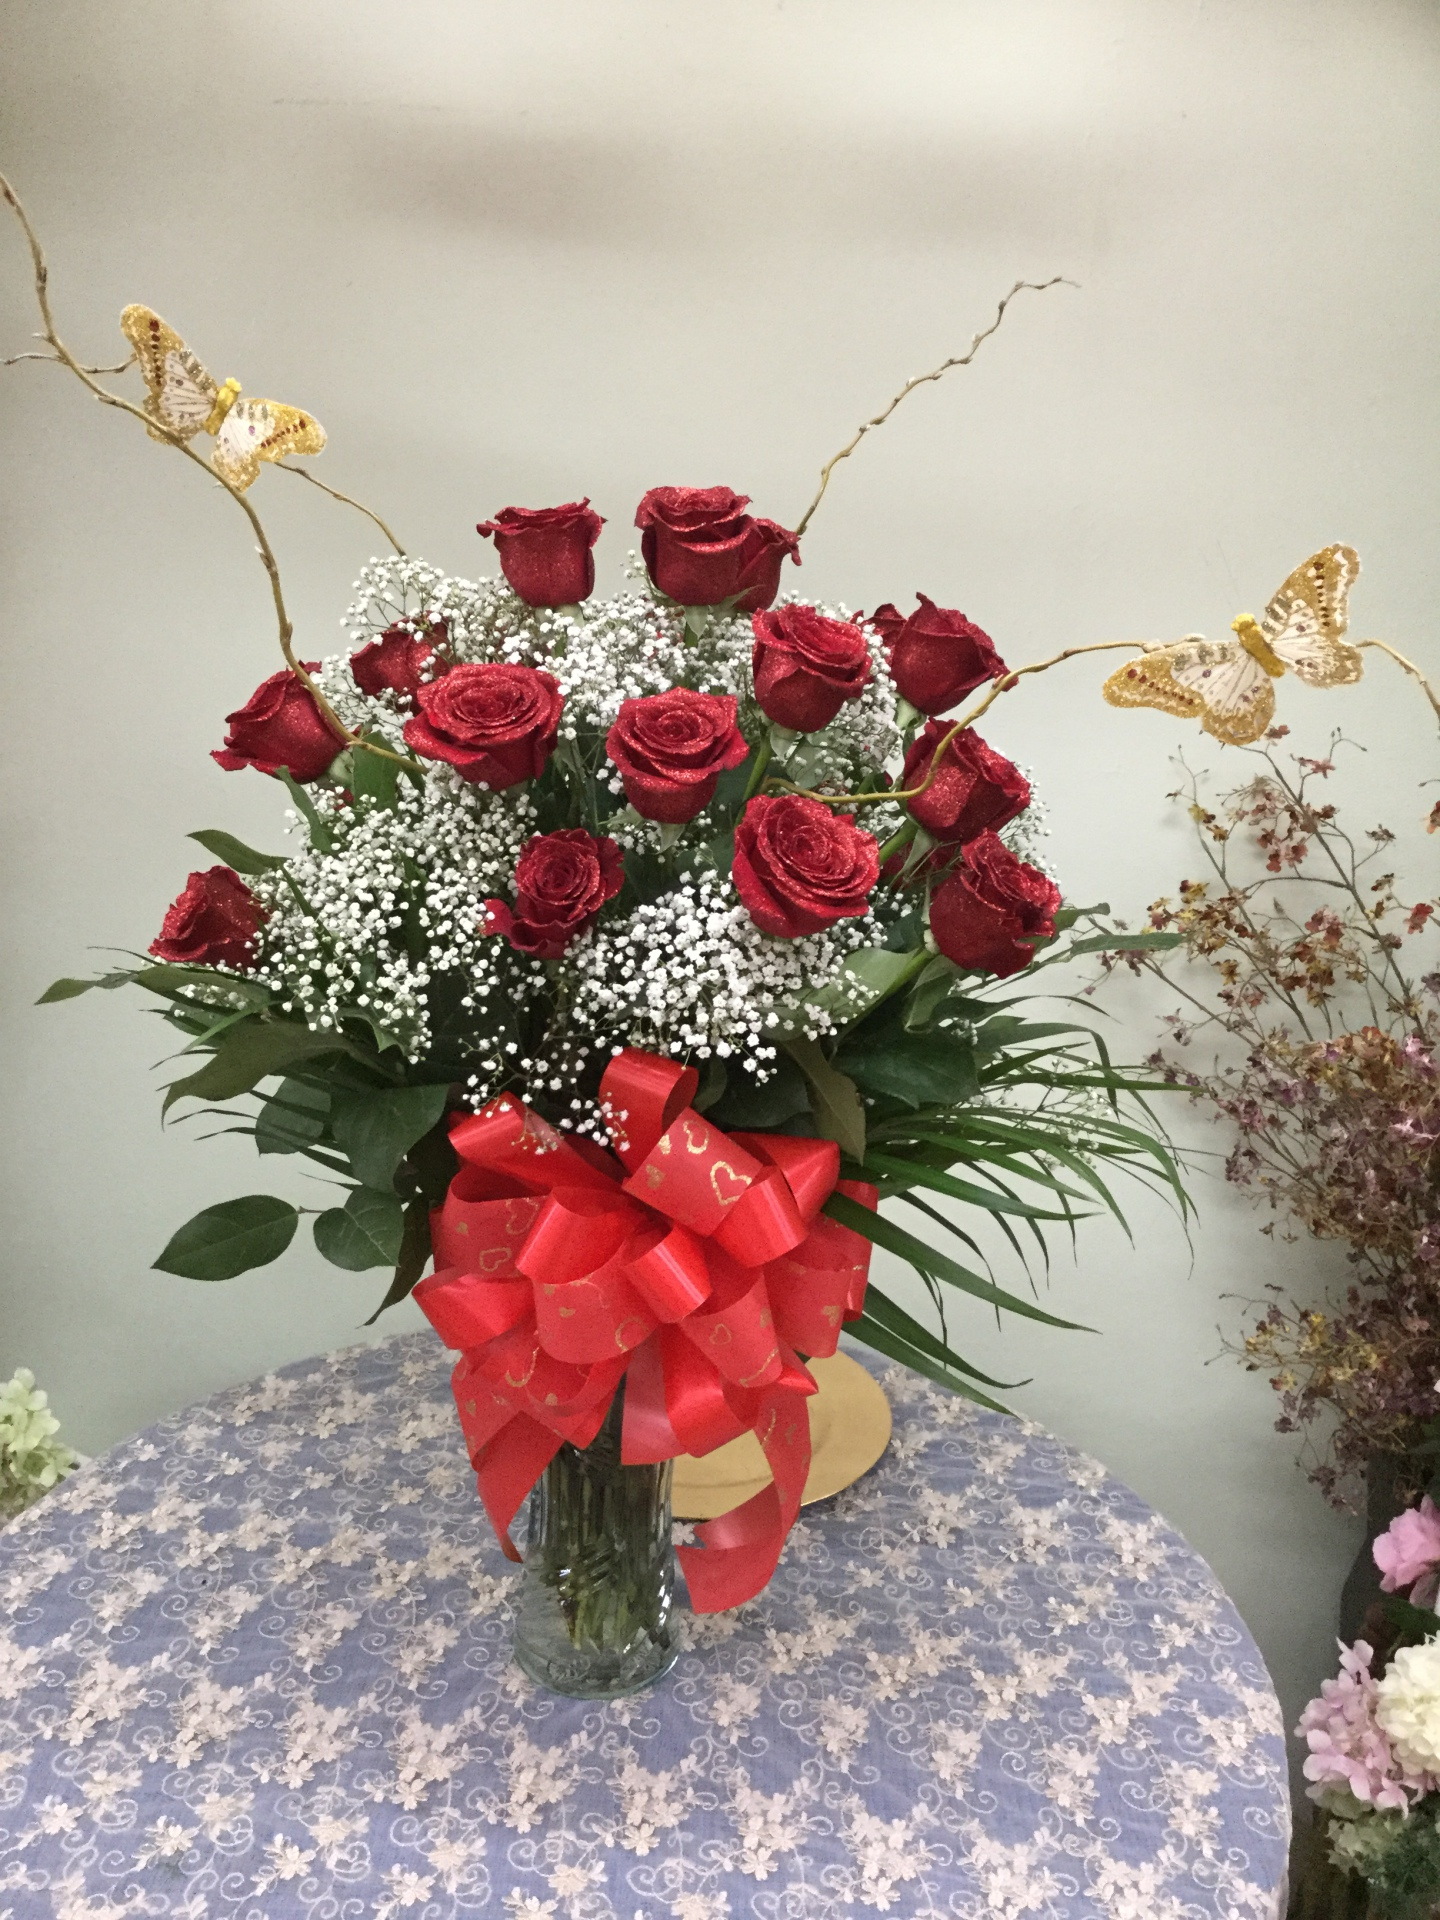 Eighteen Glittered Red Roses - Arrangement in Vase